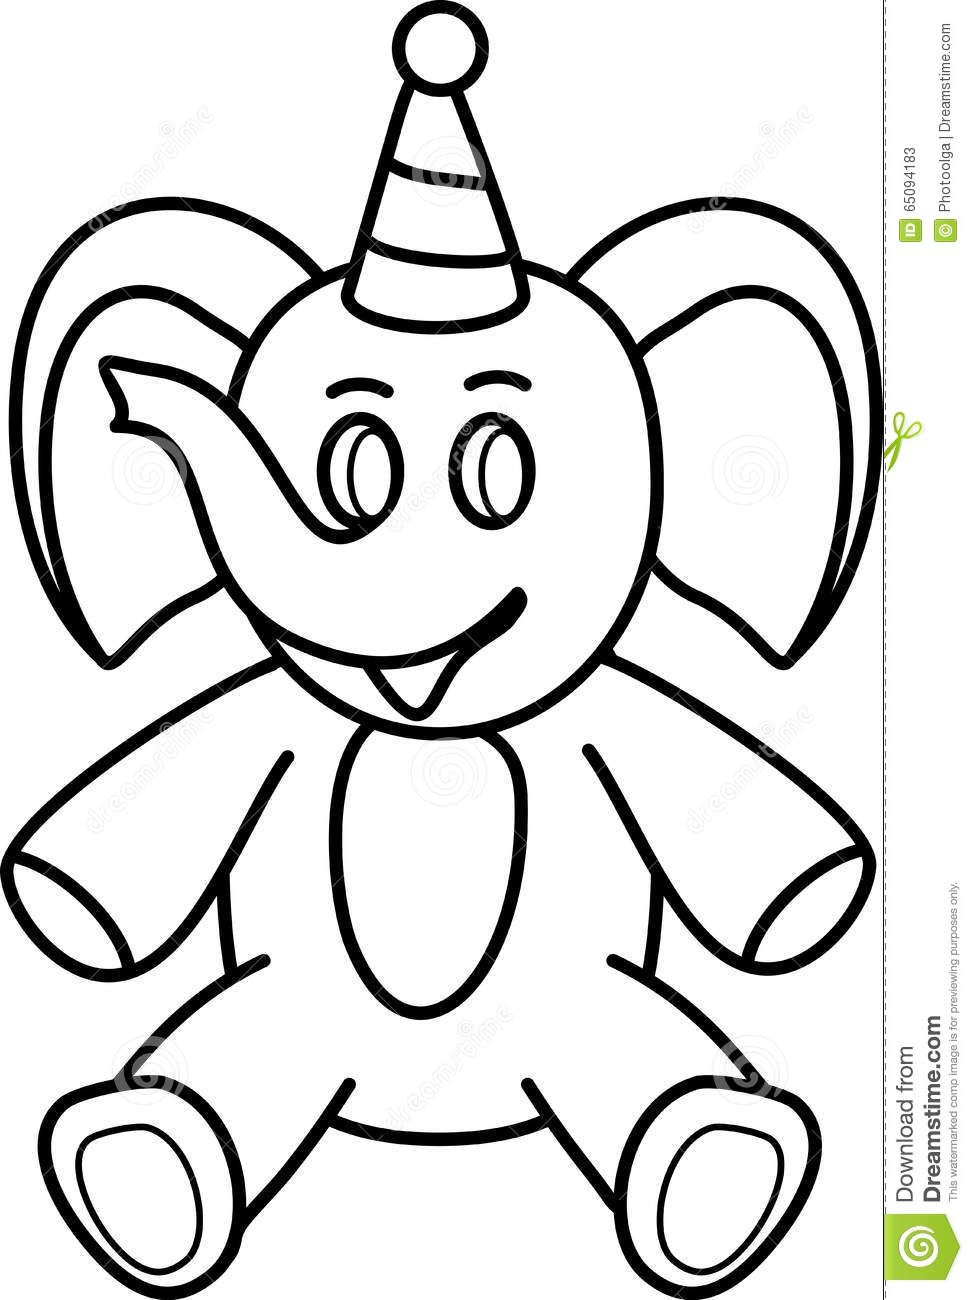 Elephant. Simple Line Drawing Toys Stock Vector